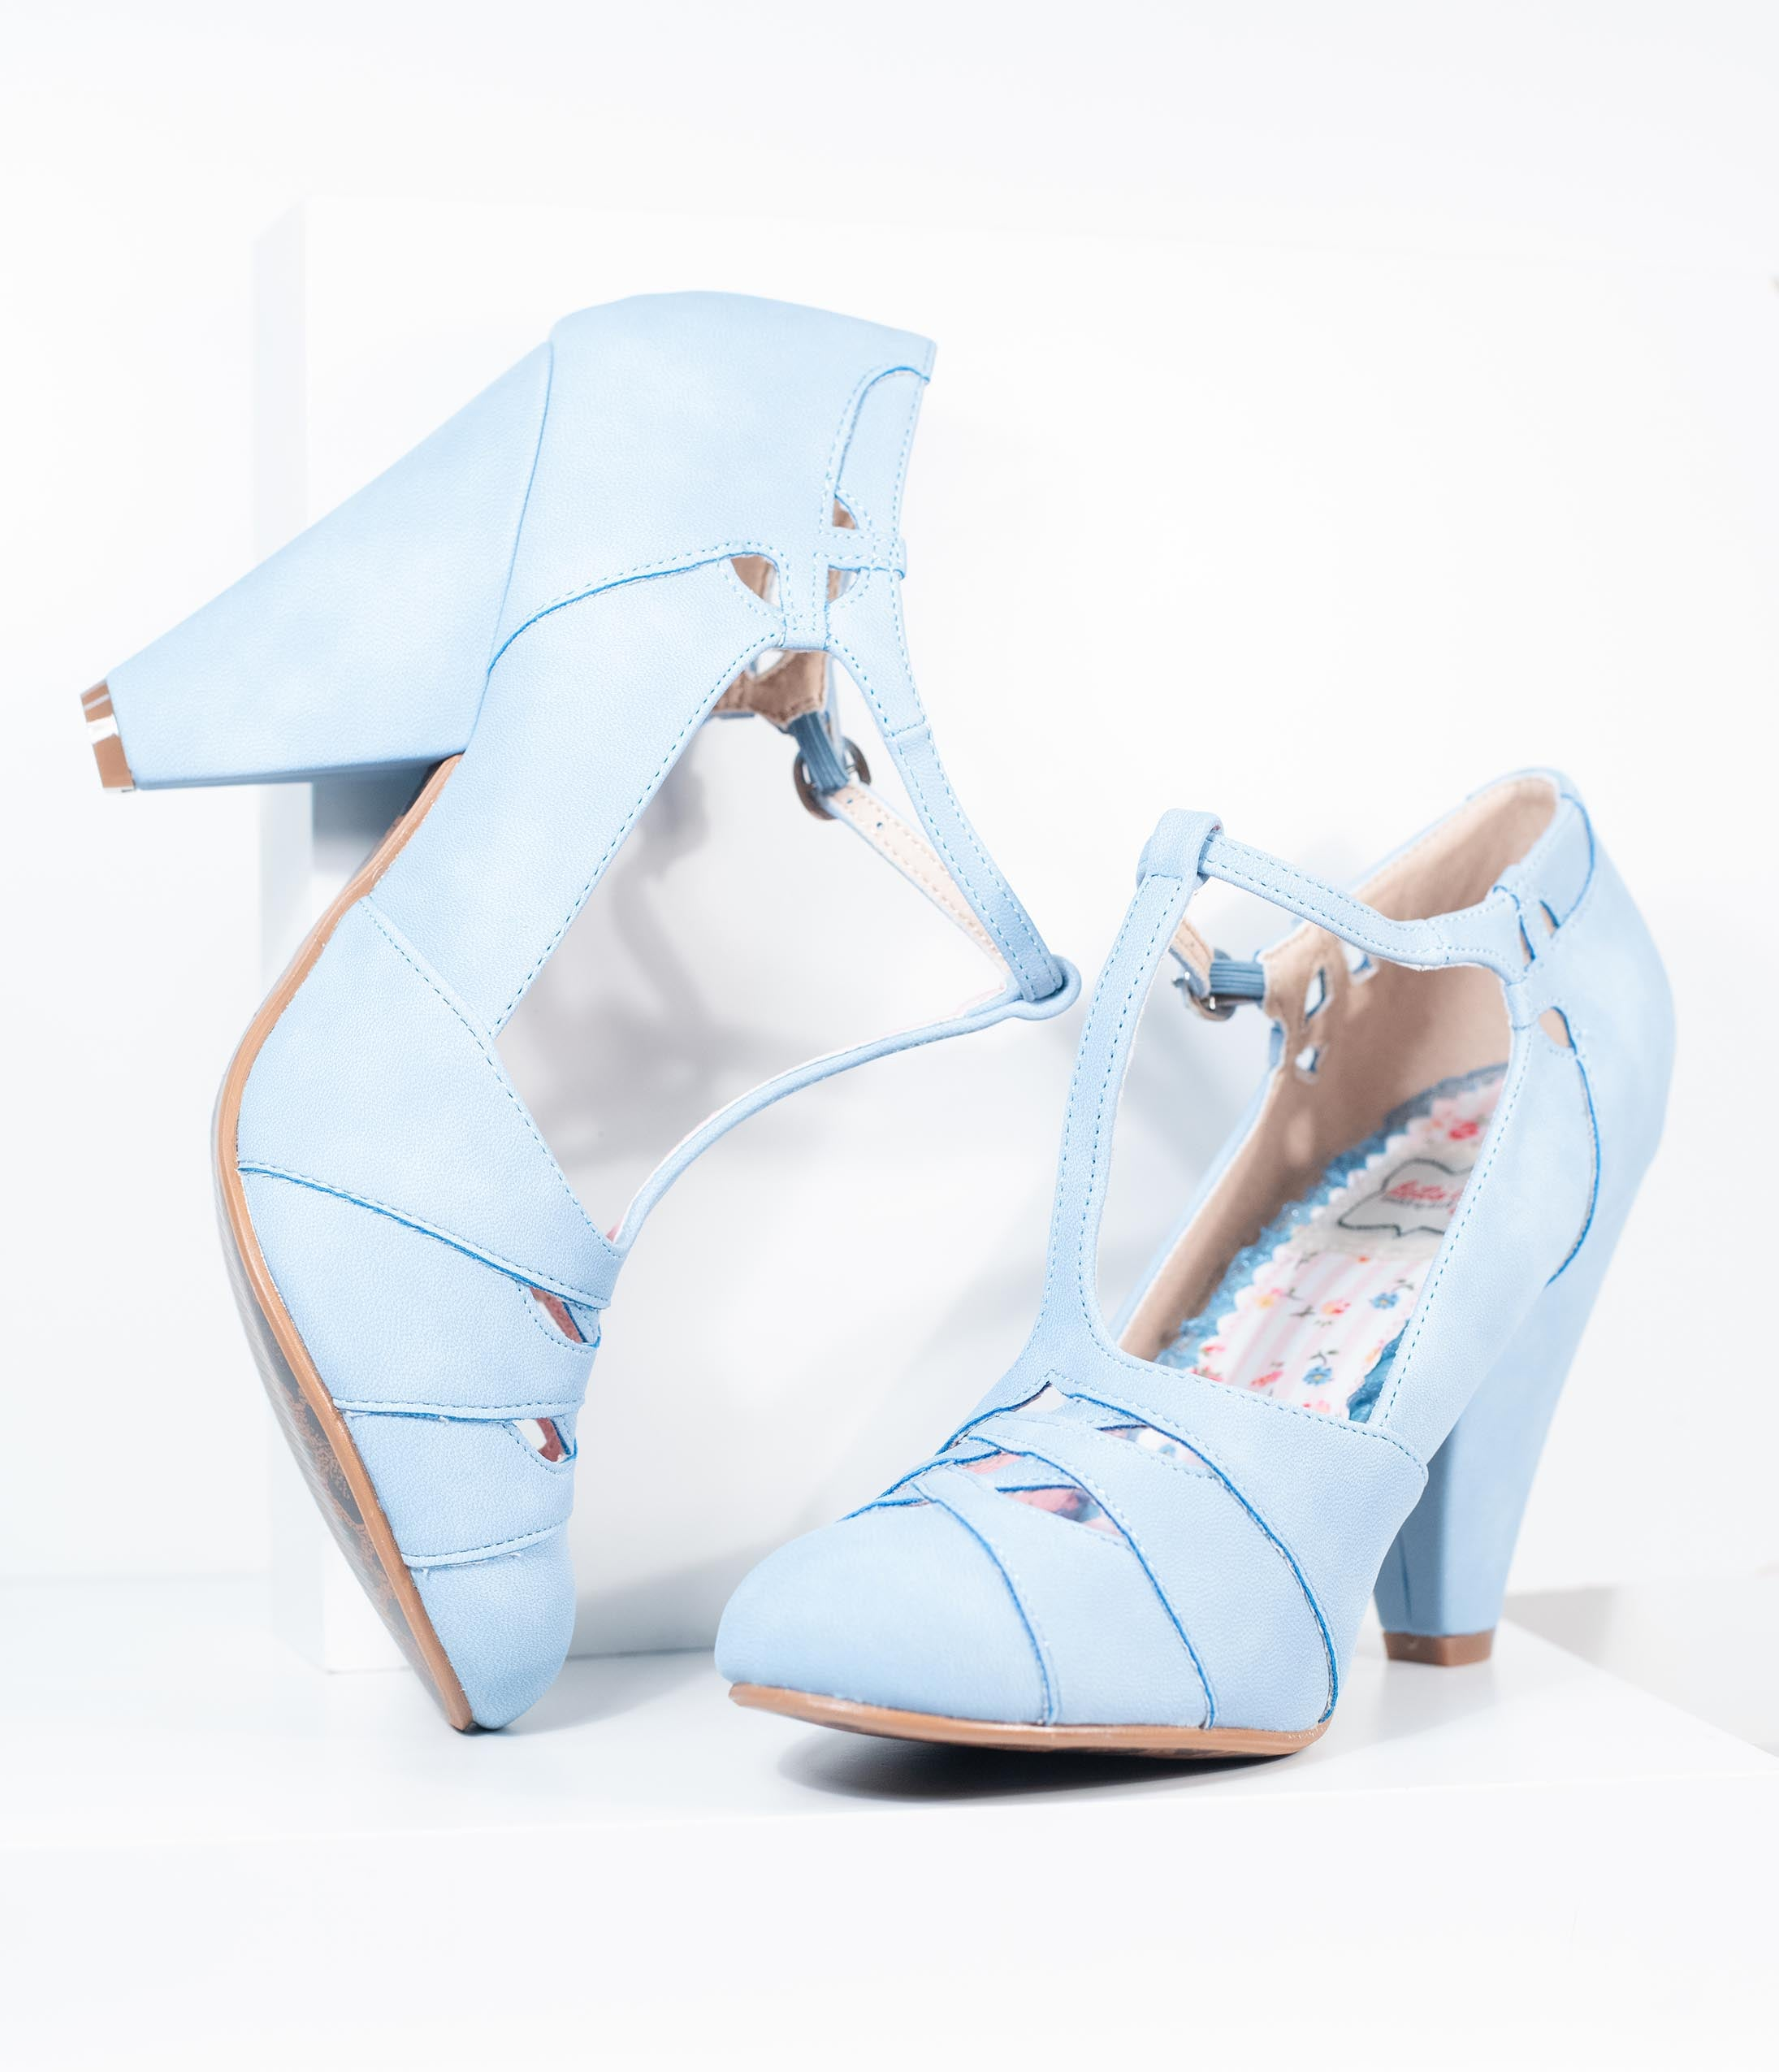 Vintage Heels, Retro Heels, Pumps, Shoes Bettie Page Baby Blue Laura T-Strap Heel $88.00 AT vintagedancer.com